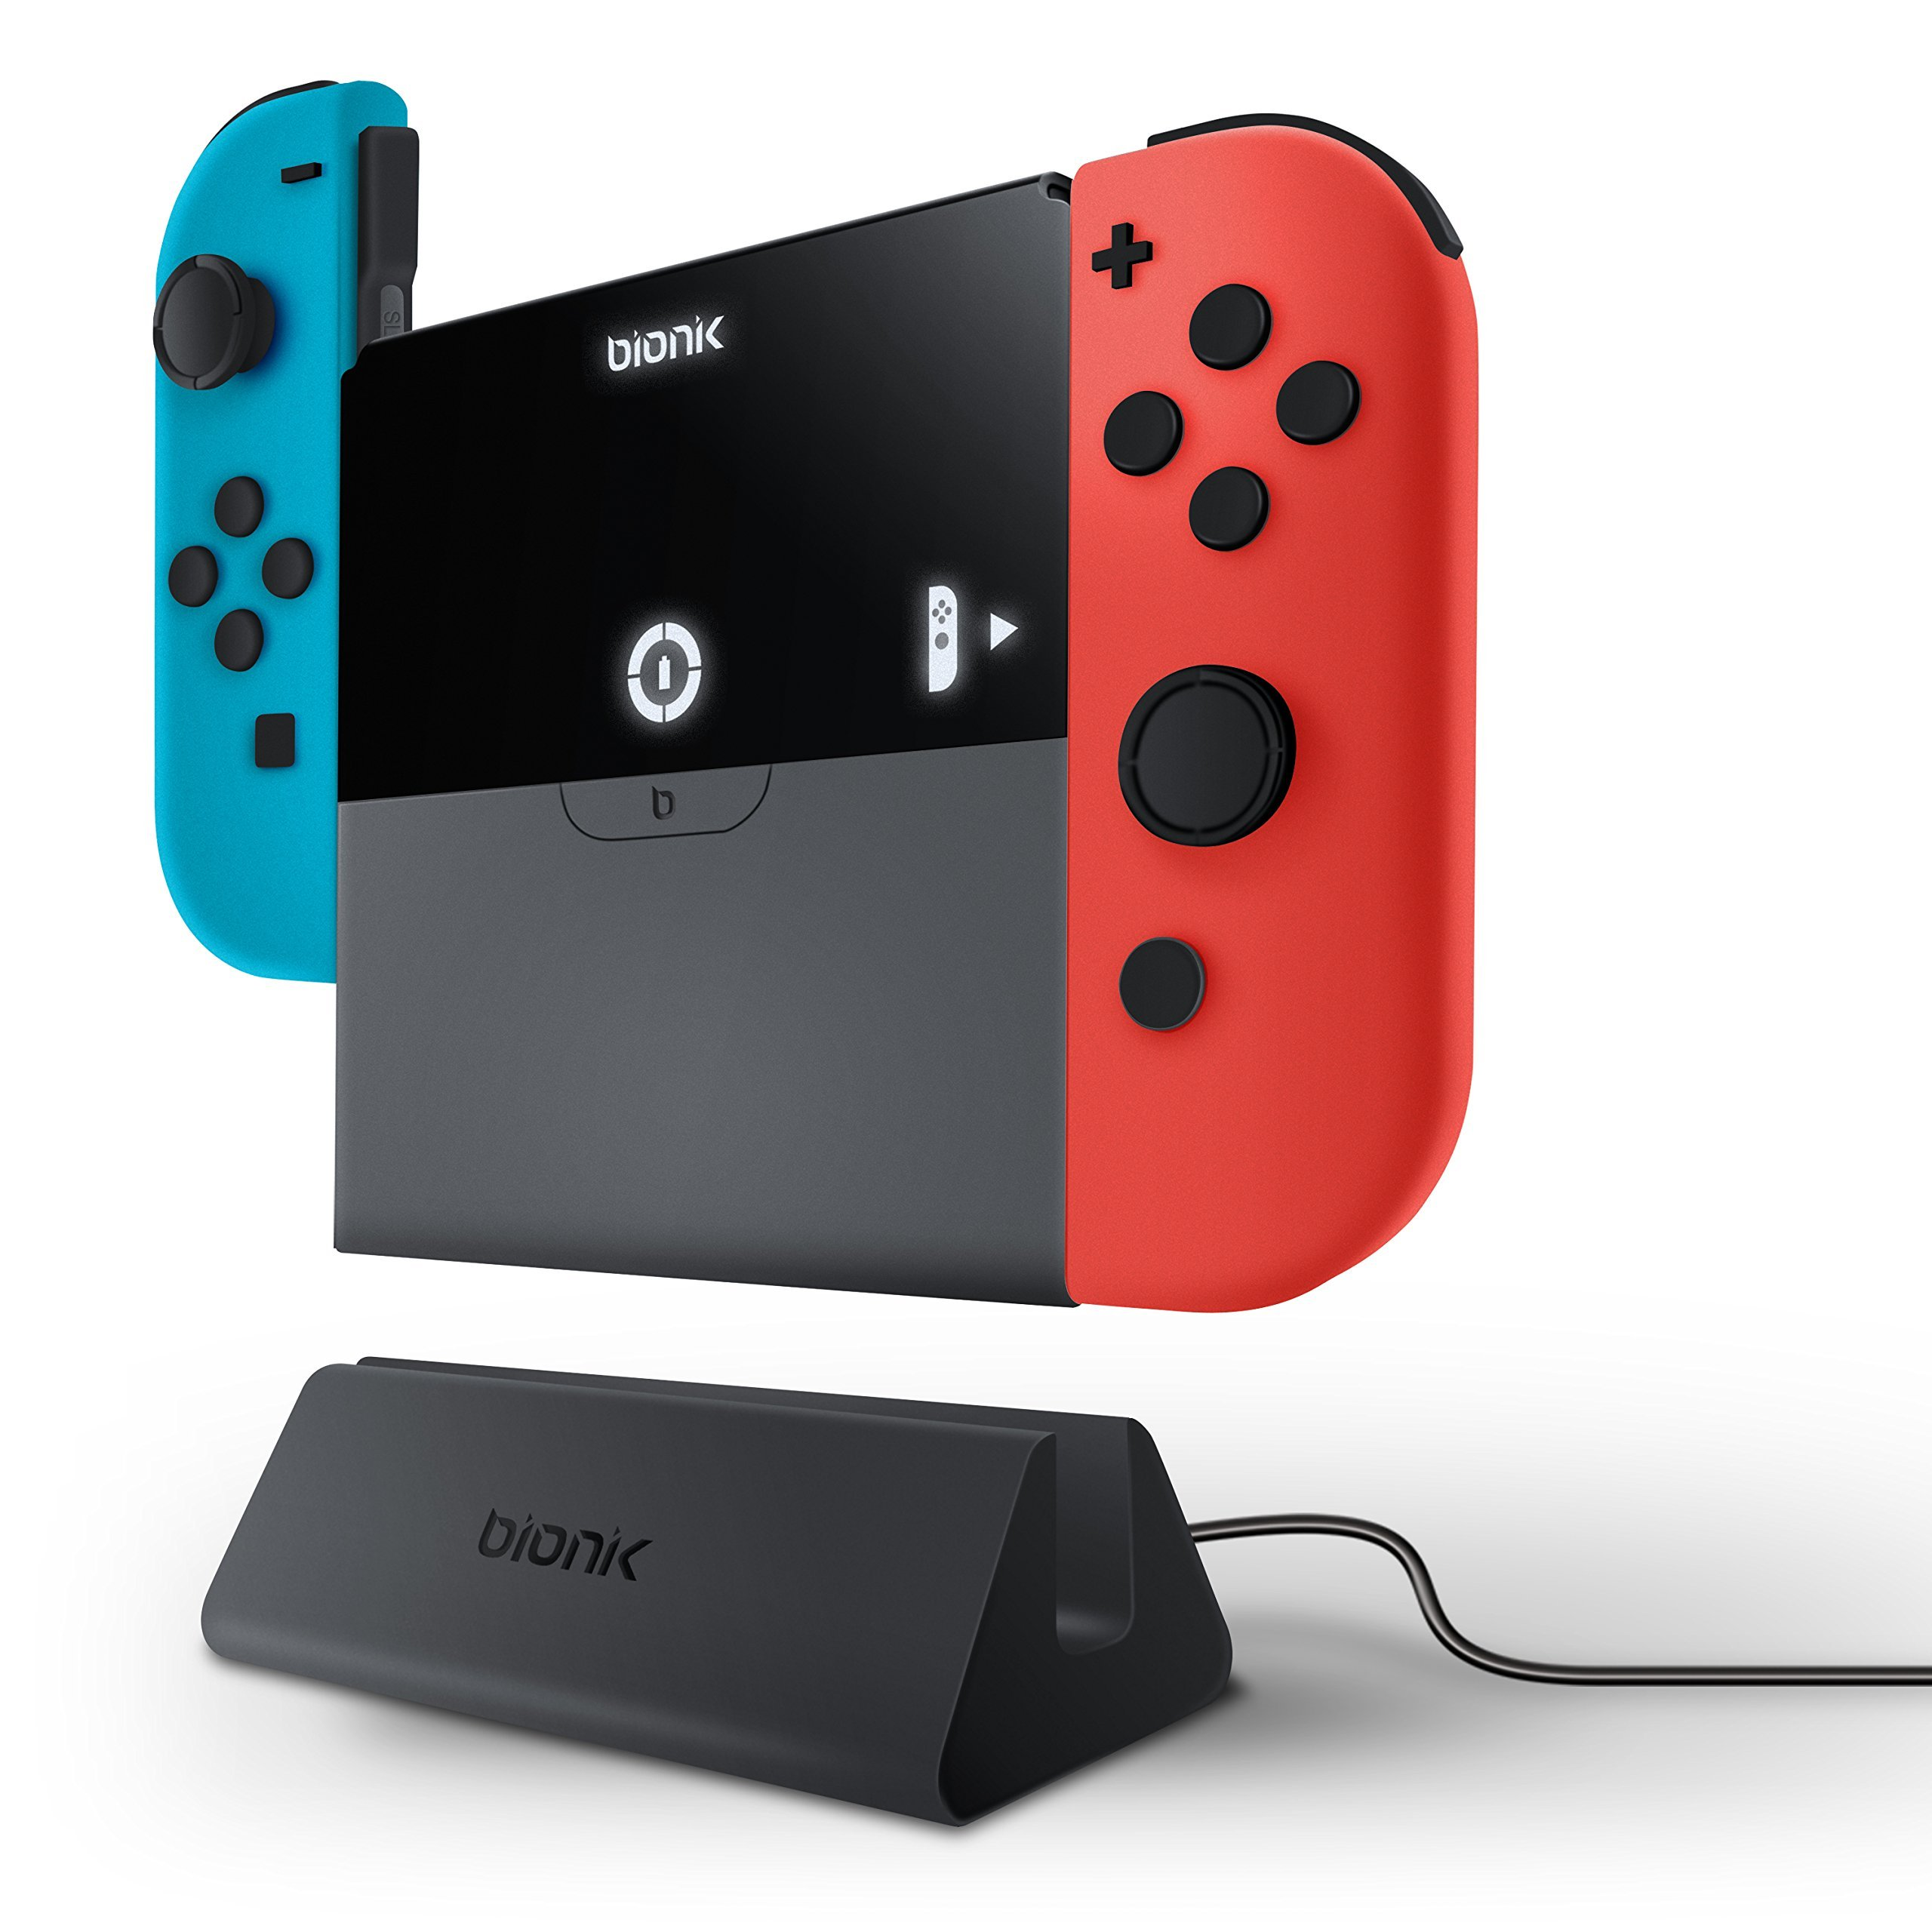 Bionik Power Plate - Multi-Function Portable Battery Bank and Joy Con Hand Grip for Nintendo Switch and Joy Con Controllers by Bionik